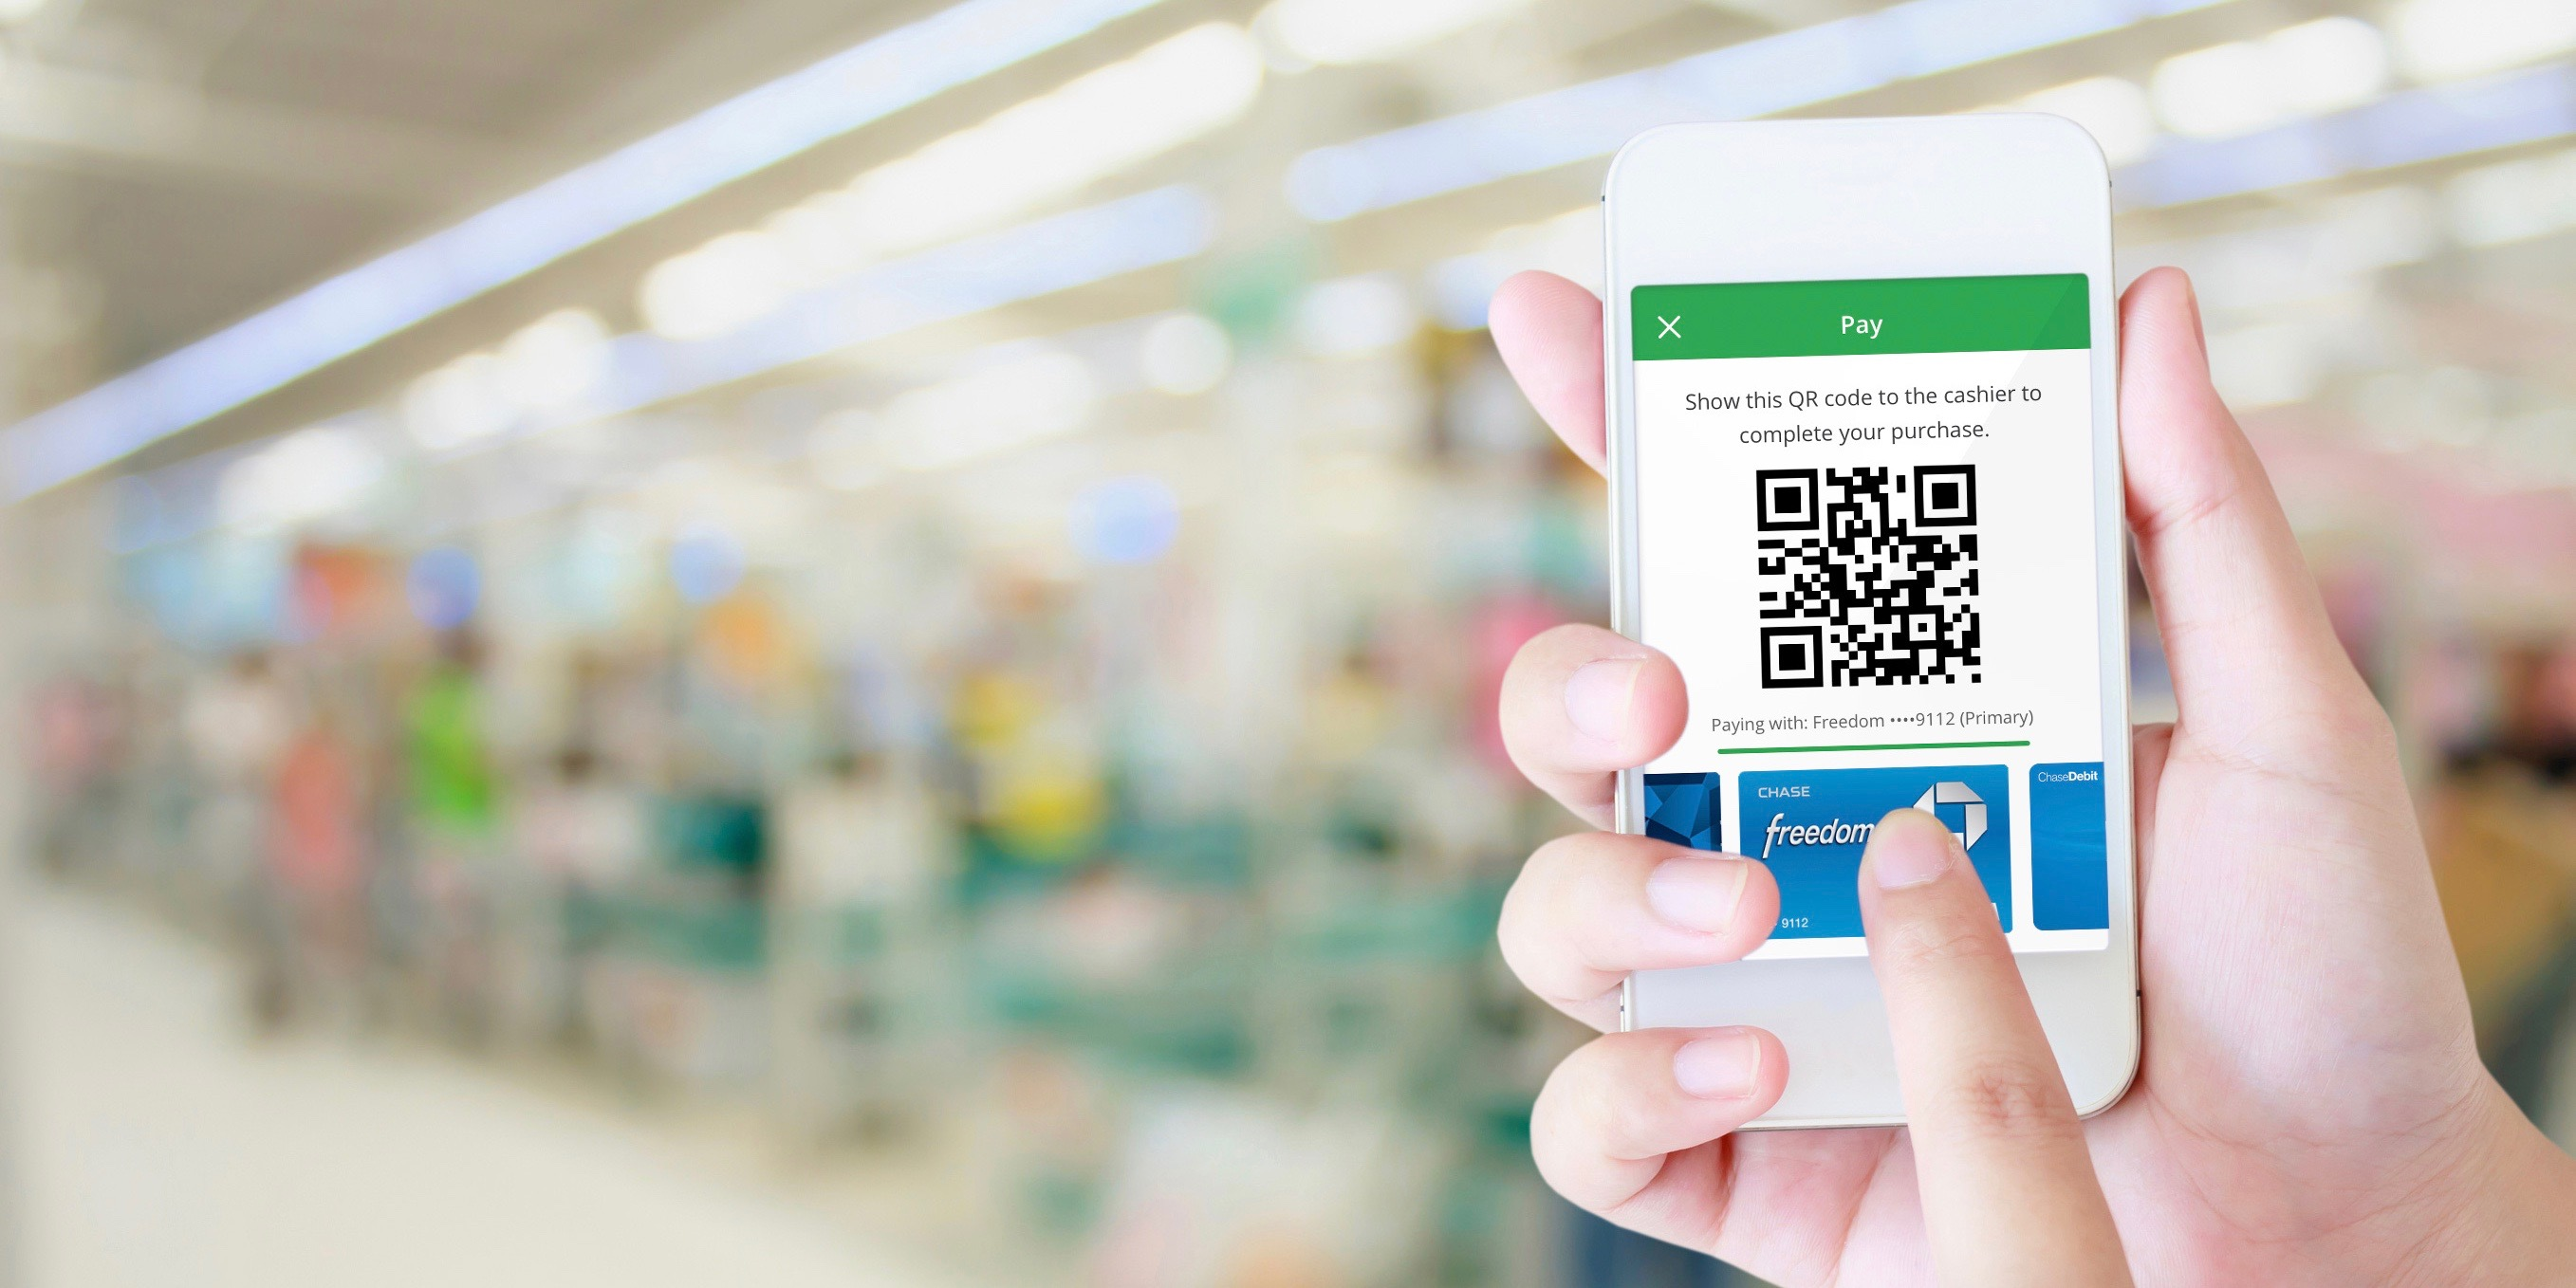 Chase Pay QR code-based payment service launches through bank's new